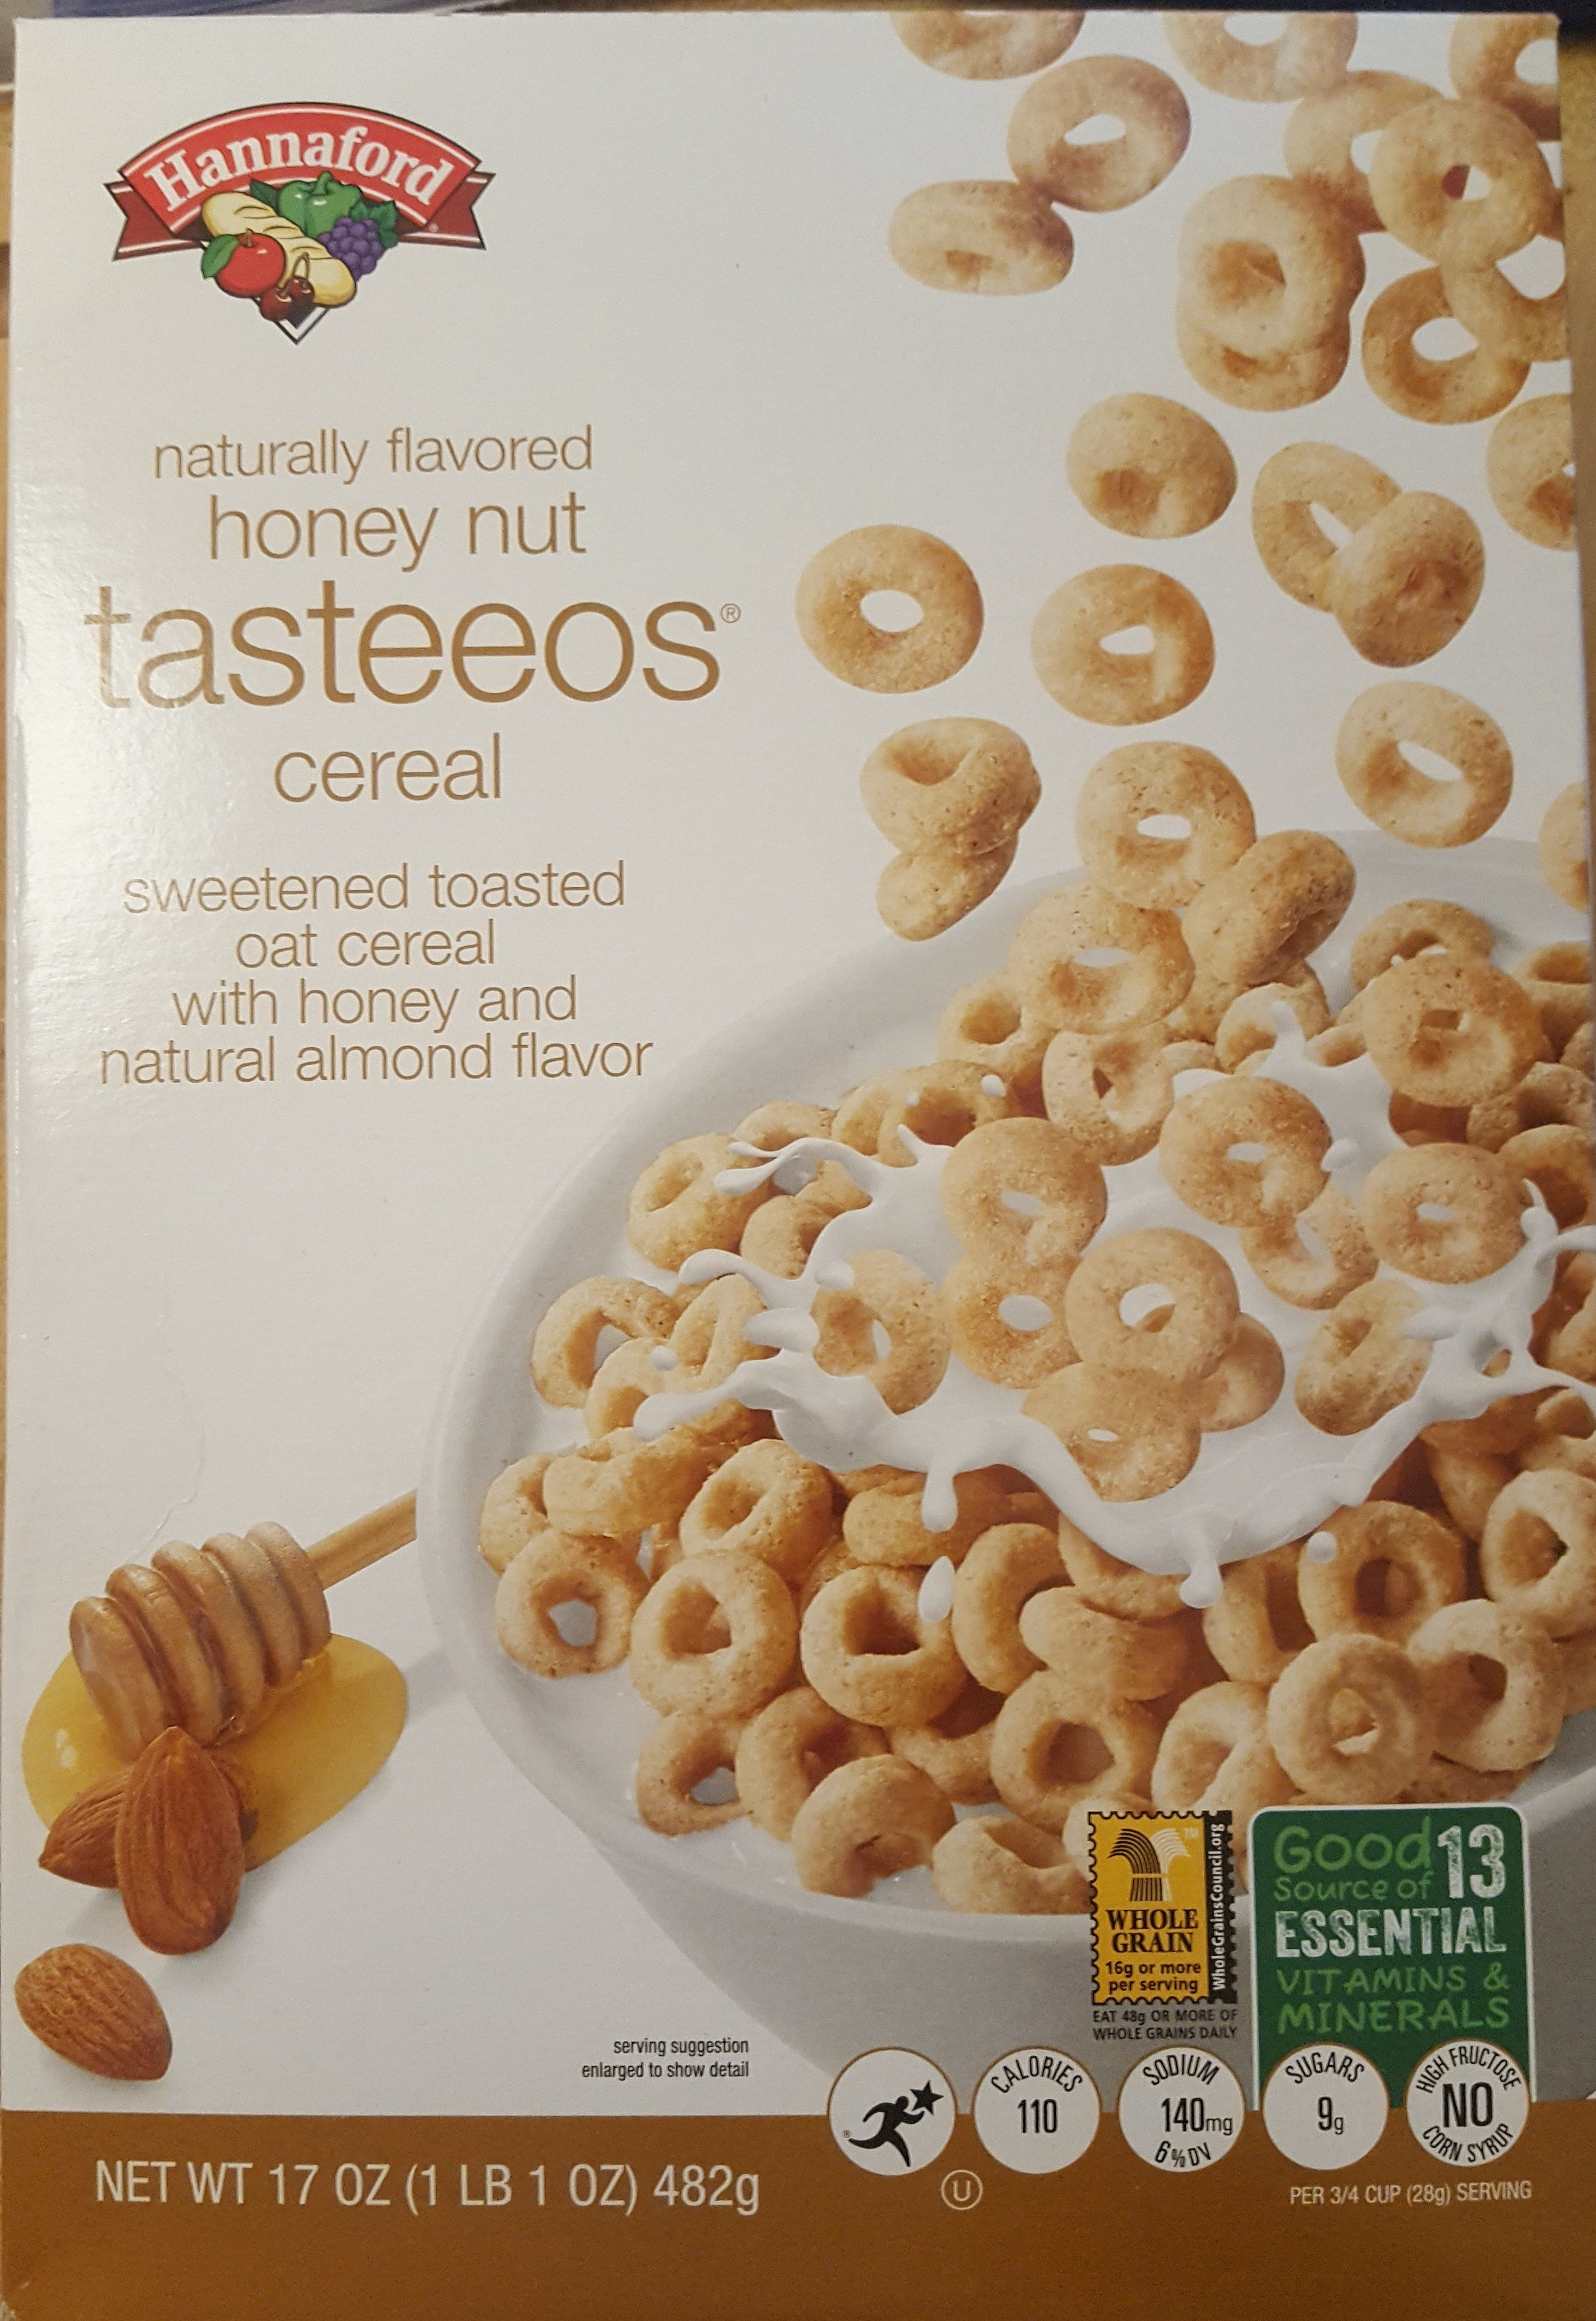 Hannaford, tasteeos, sweetened toasted oat cereal with honey and natural almond flavor, honey nut - Product - en